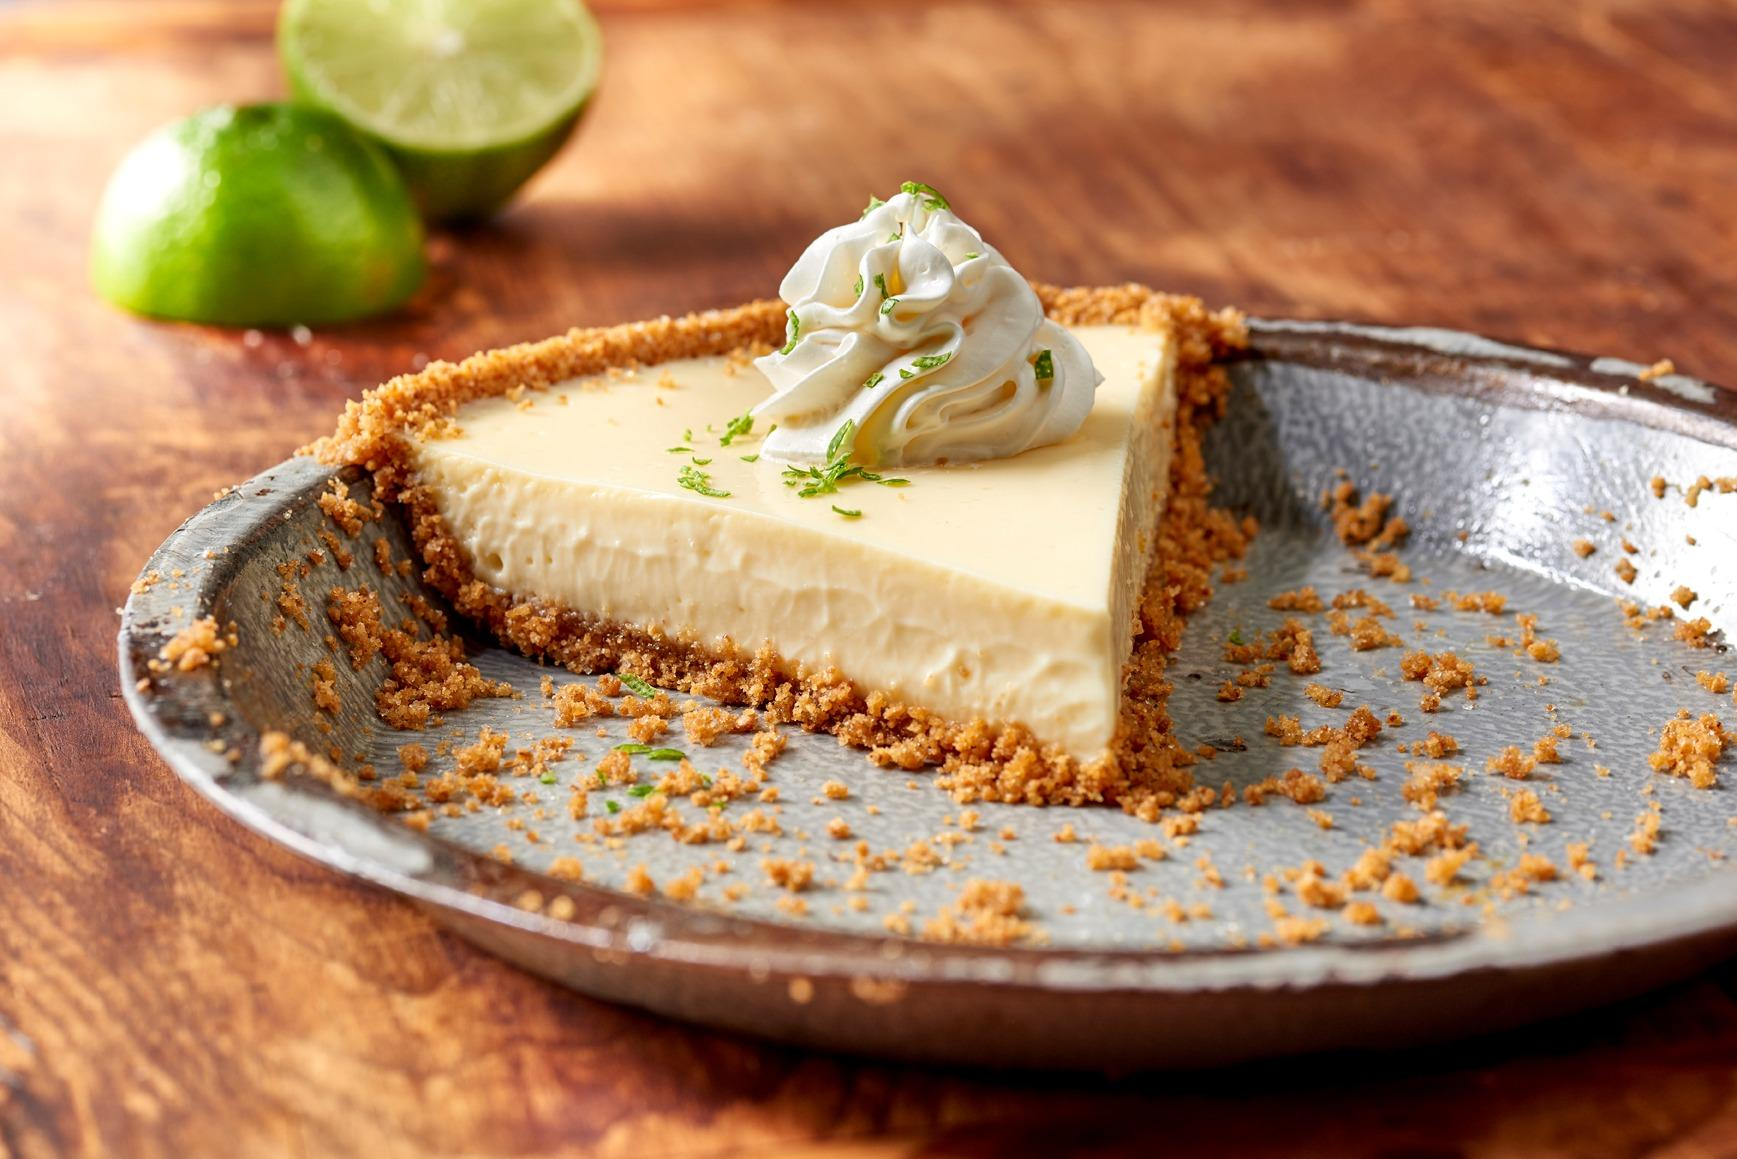 Key Lime Pie - made from scratch!